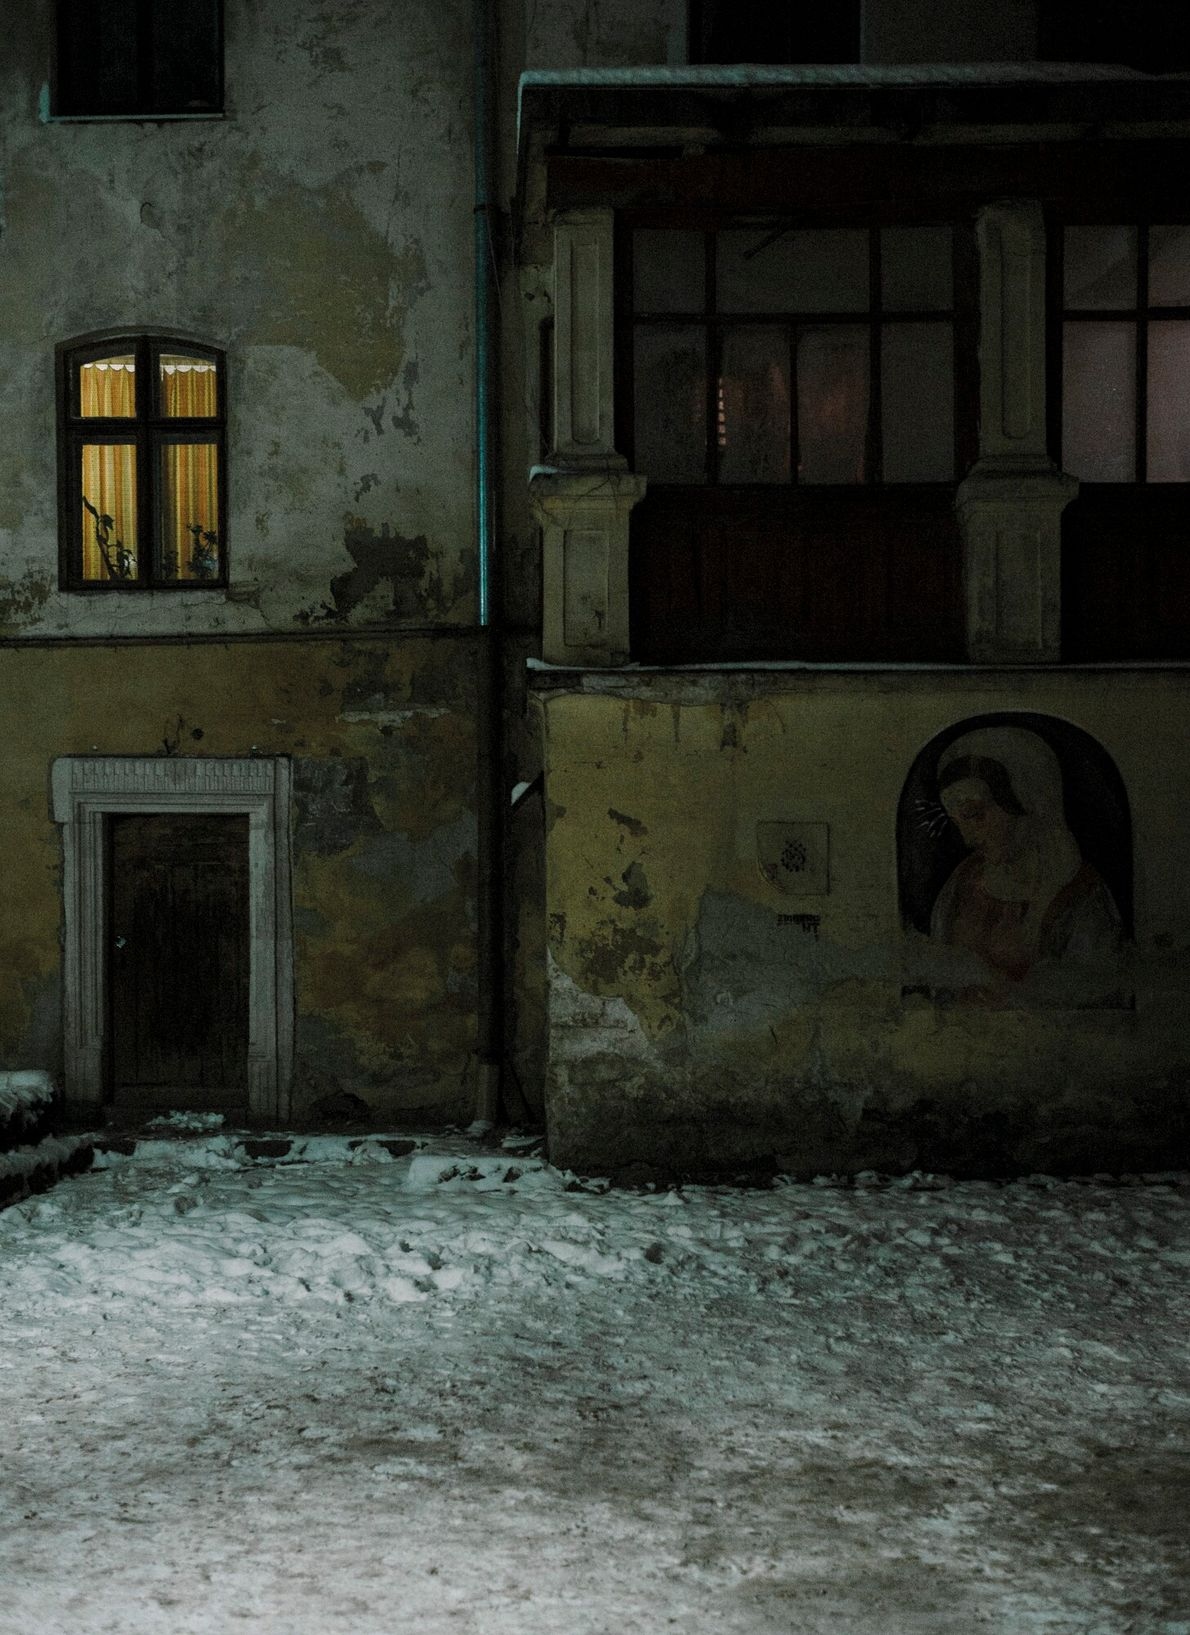 Ukraine, 2018: A street on the edge of the ghetto walls in Lviv containing the hiding ...